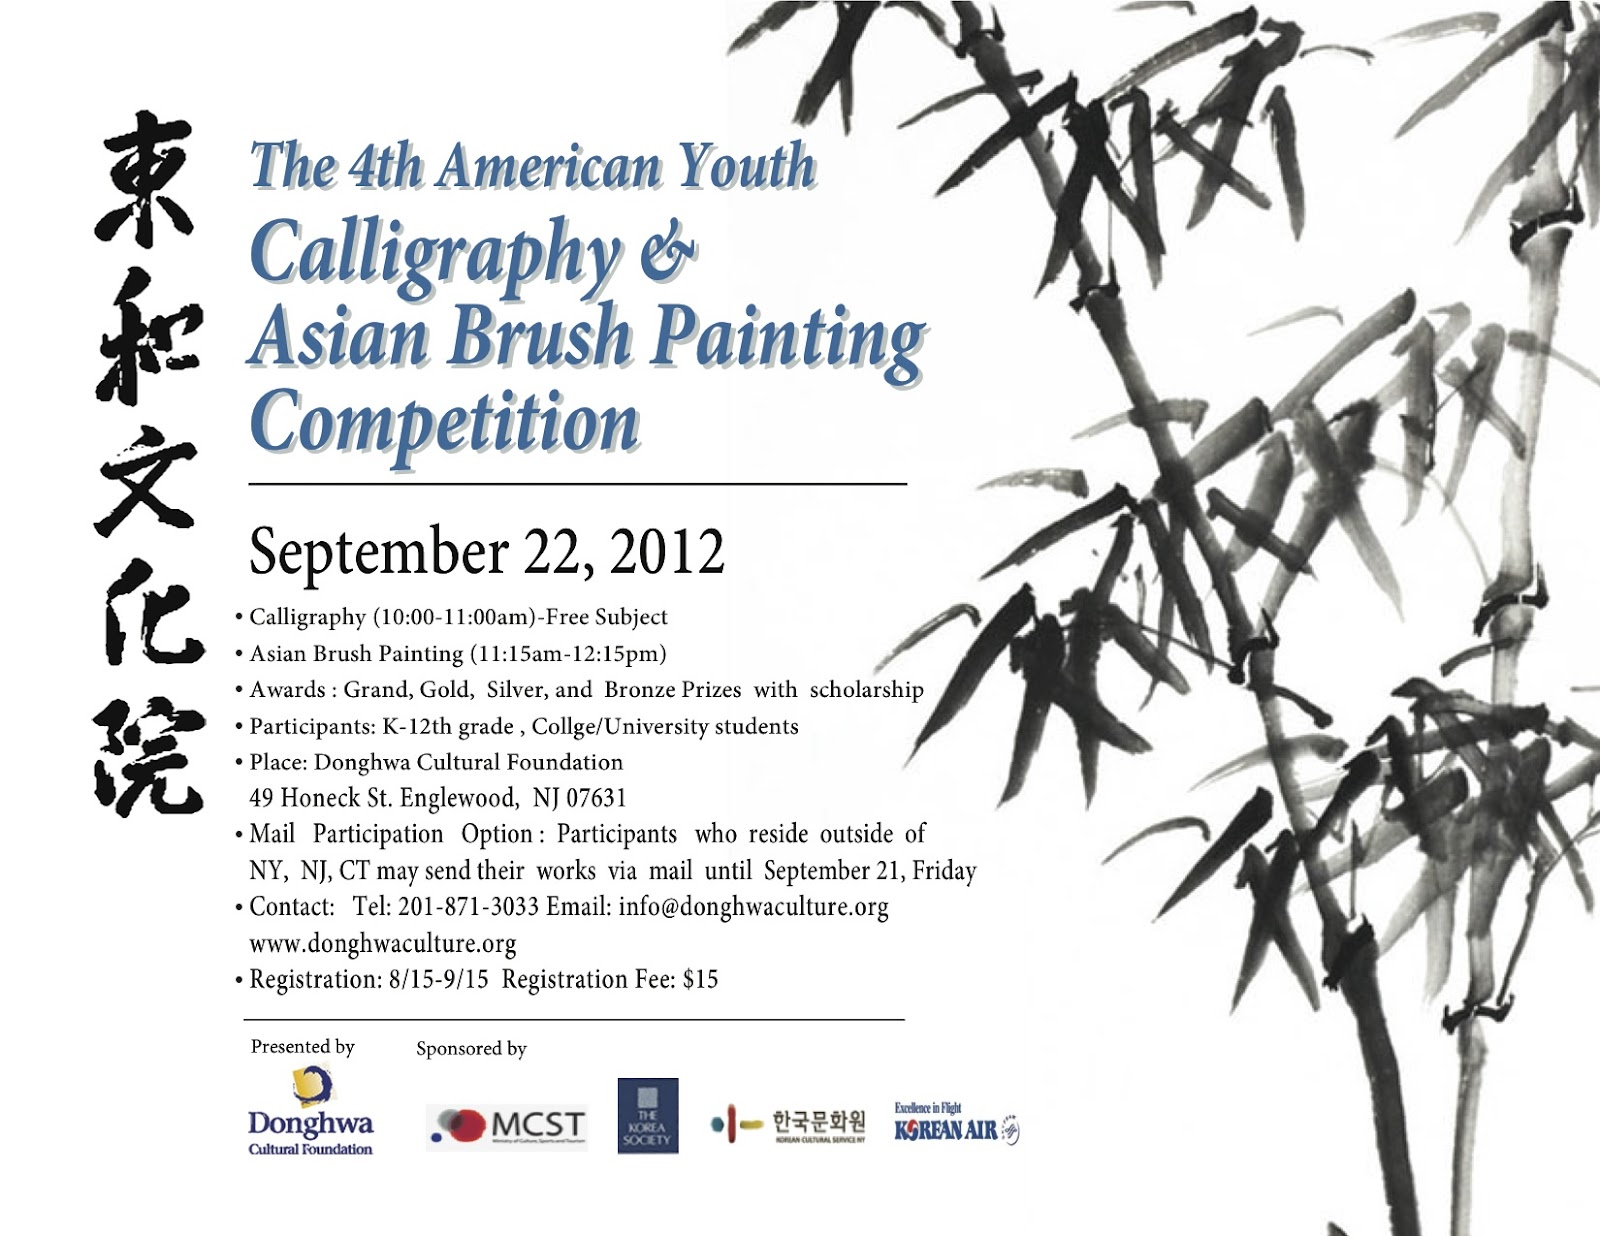 Donghwa American Youth Calligraphy Asian Brush Painting